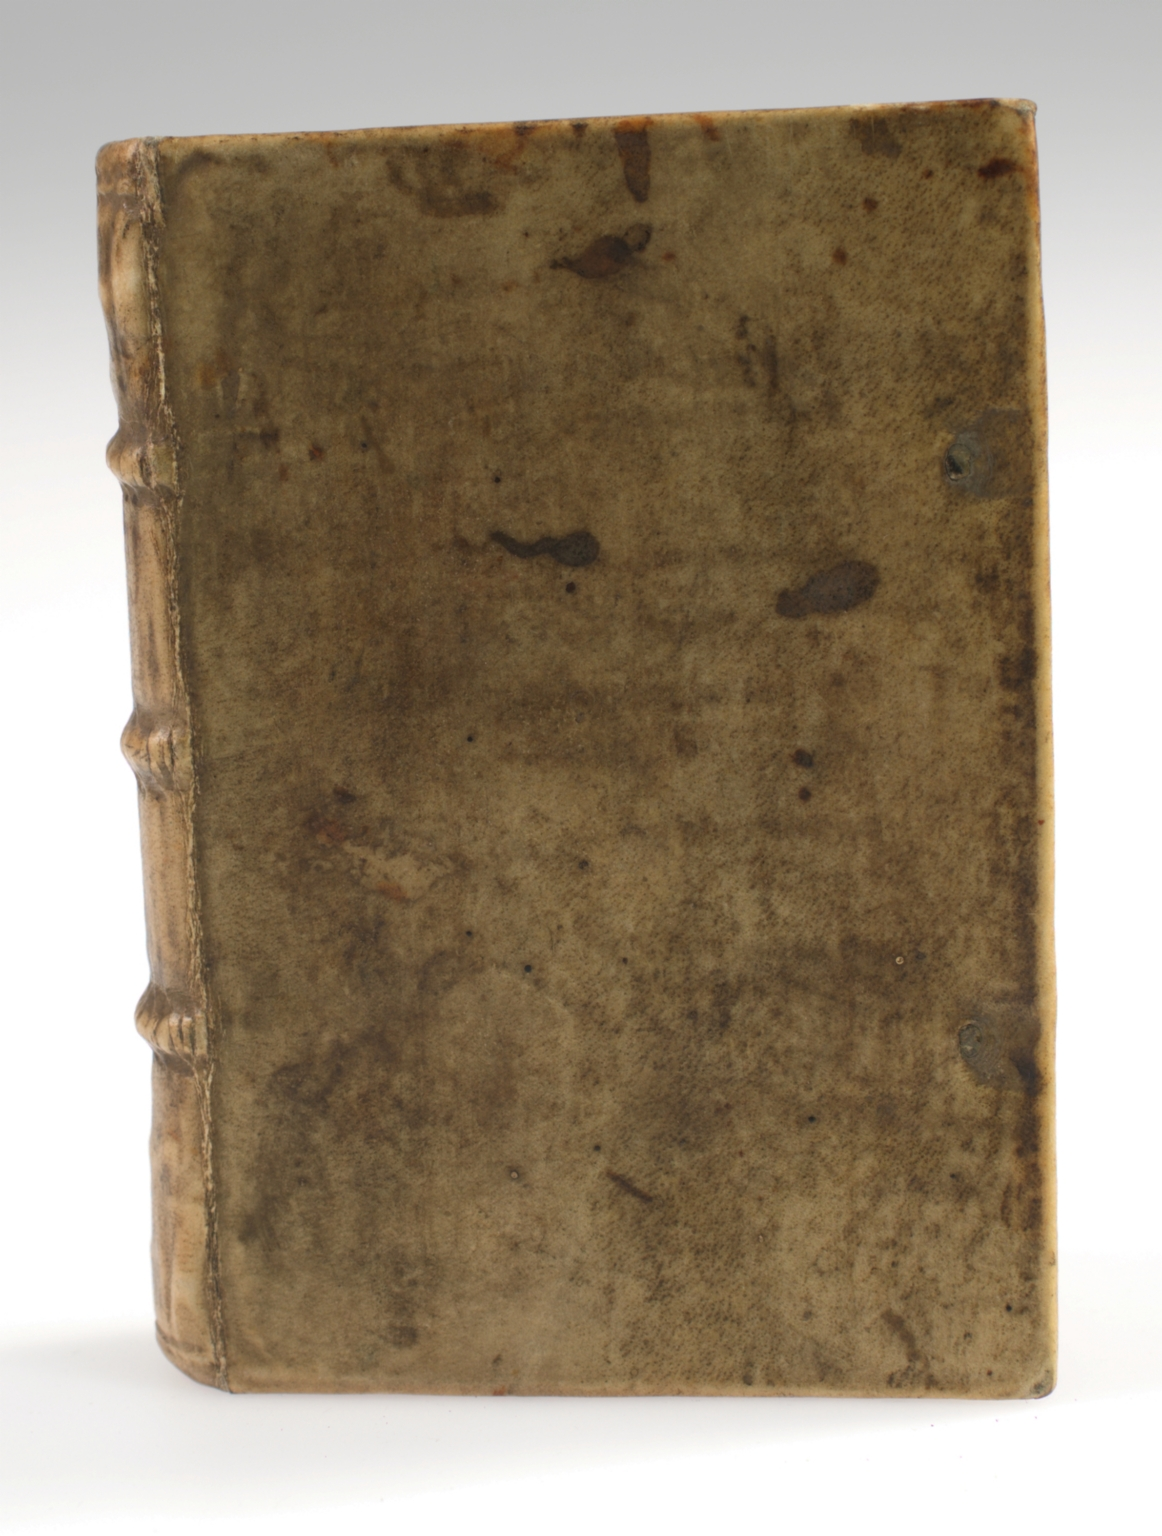 Miscellany of sermons by Caesarius of Arles, Eusebius Gallicanus, Eucherius of Lyon, Faustus of Riez, Augustine, Hugh of St. Victor, Pope Benedict XII, and Pope Urban V, cover